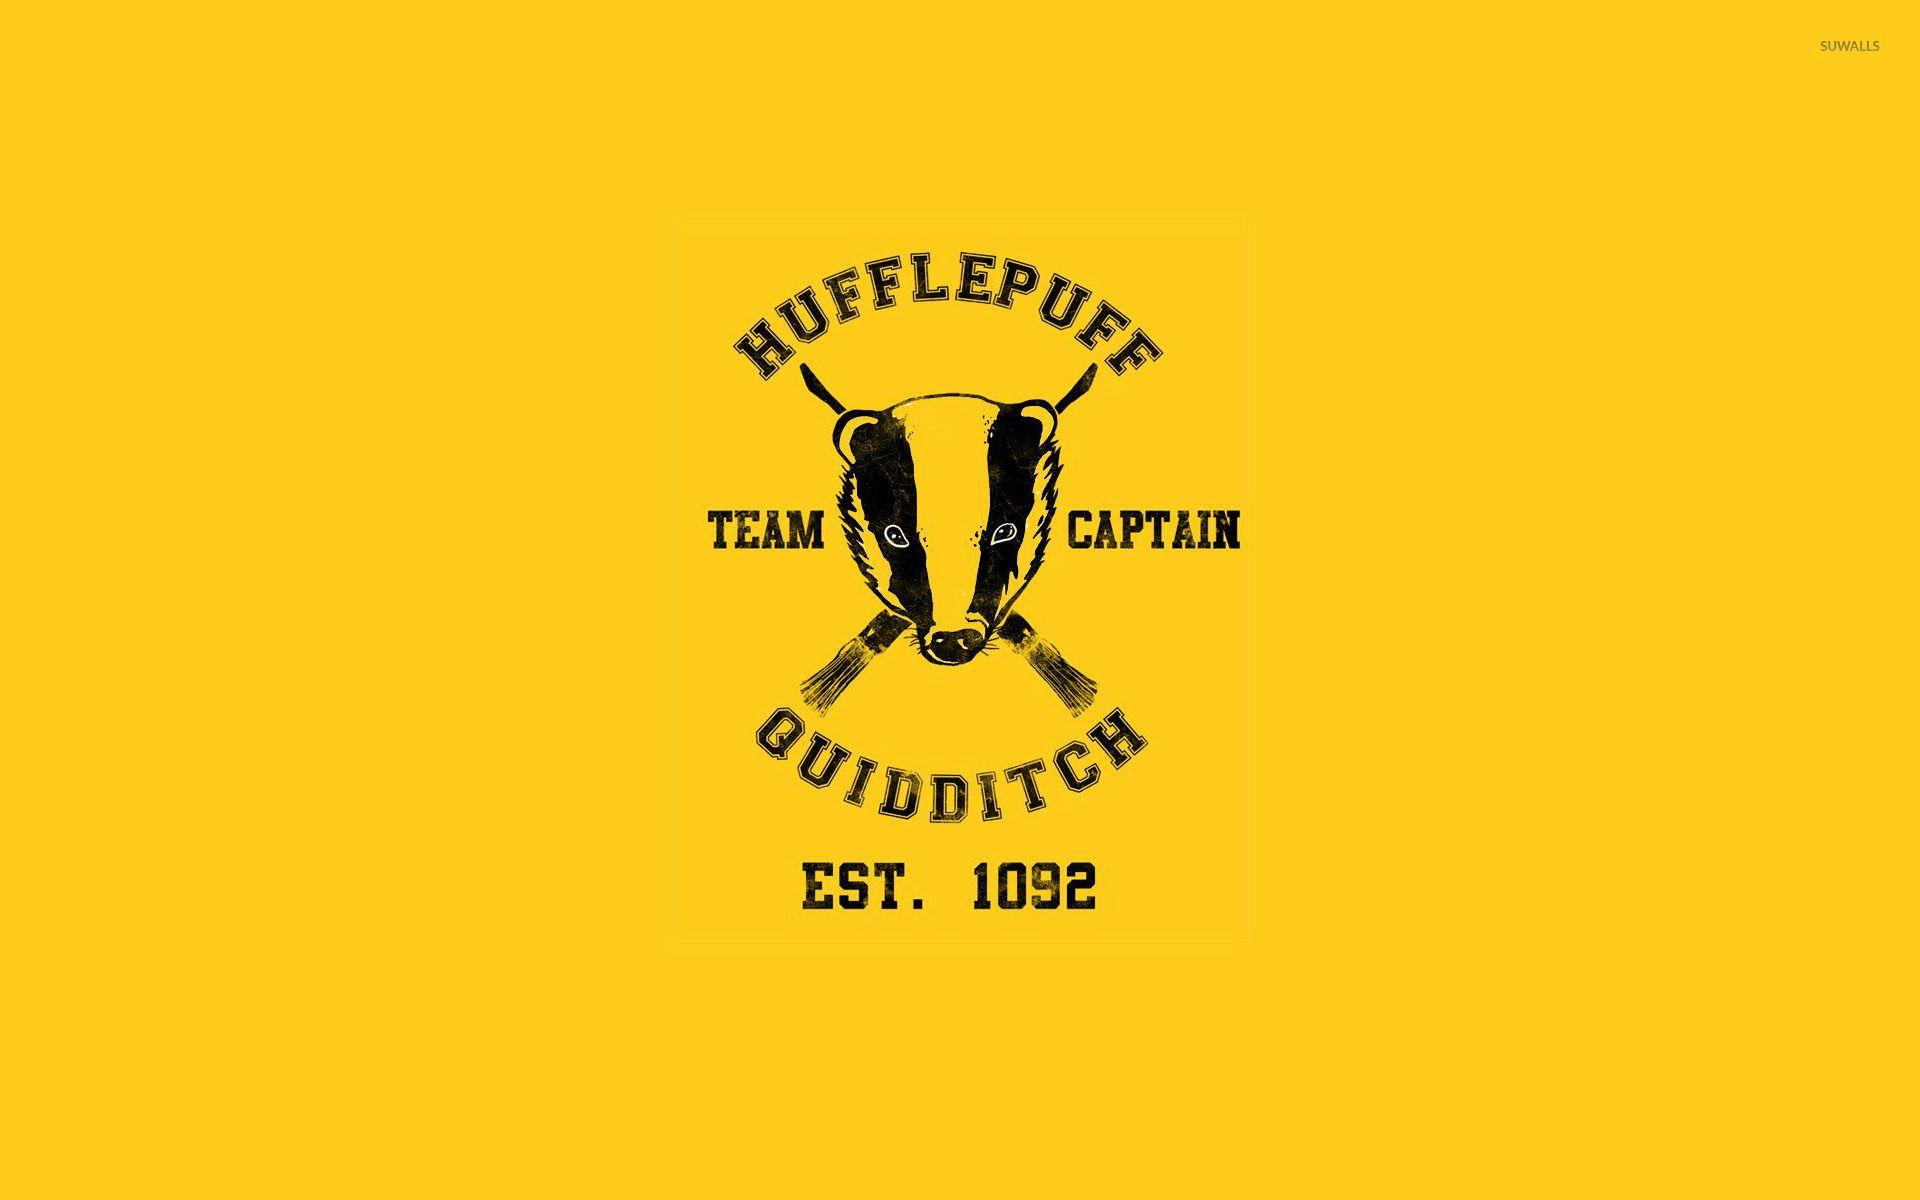 Hufflepuff Wallpapers Wallpaper Cave